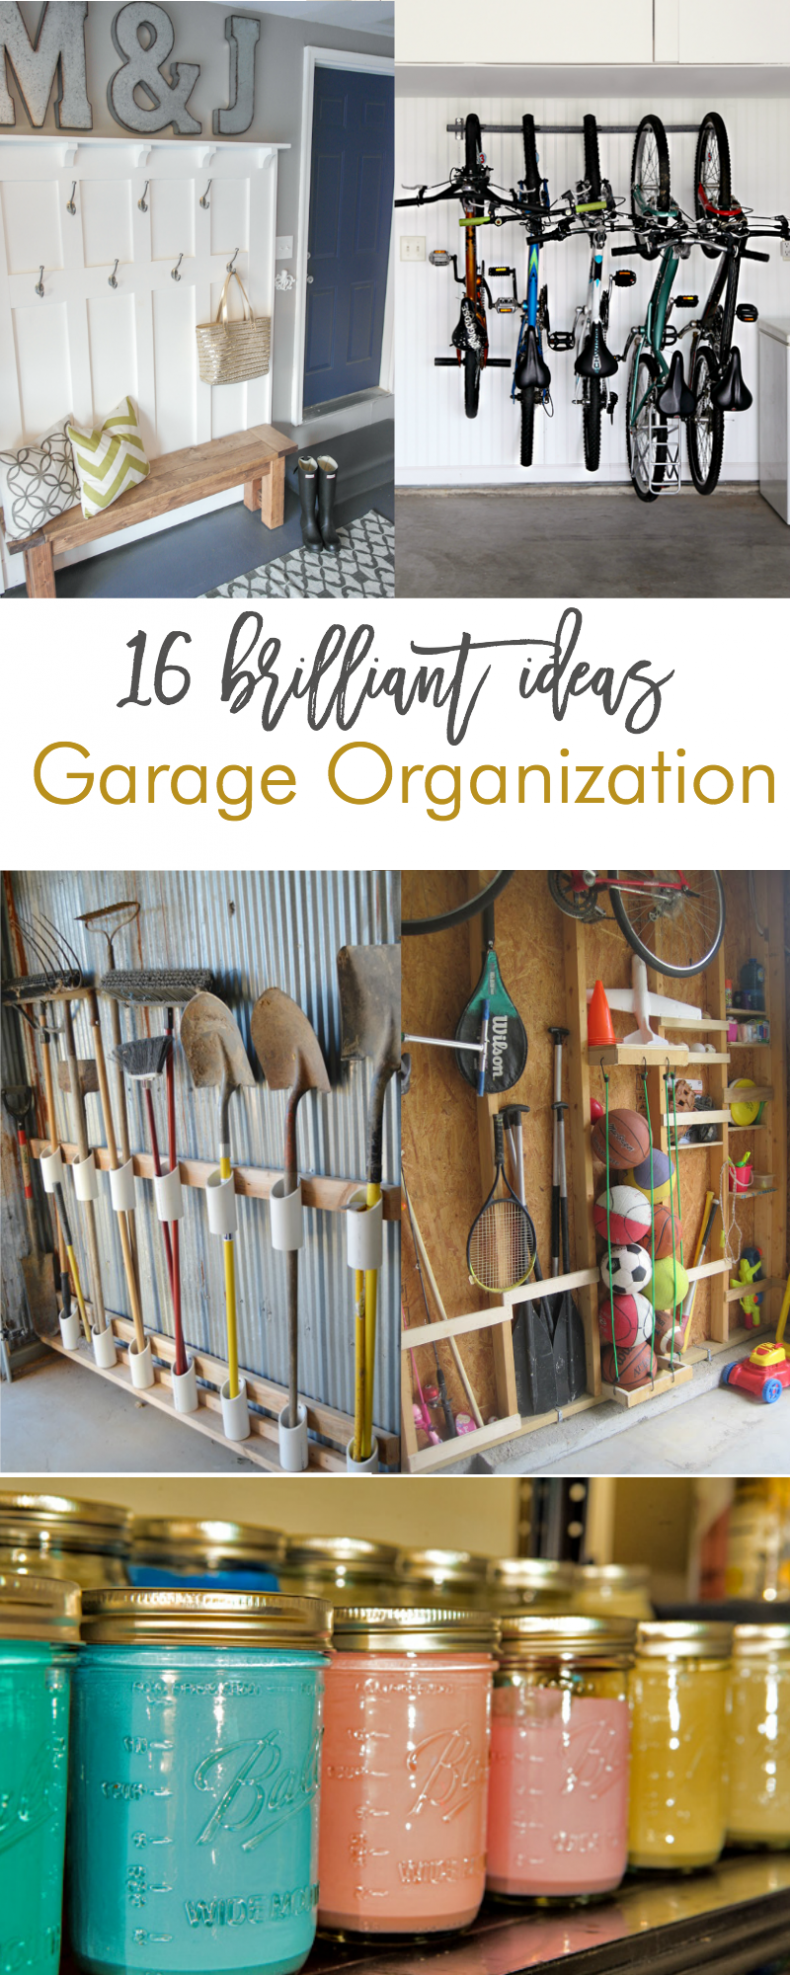 Garage Shelving Design Ideas 16 Brilliant Diy Garage Organization Ideas